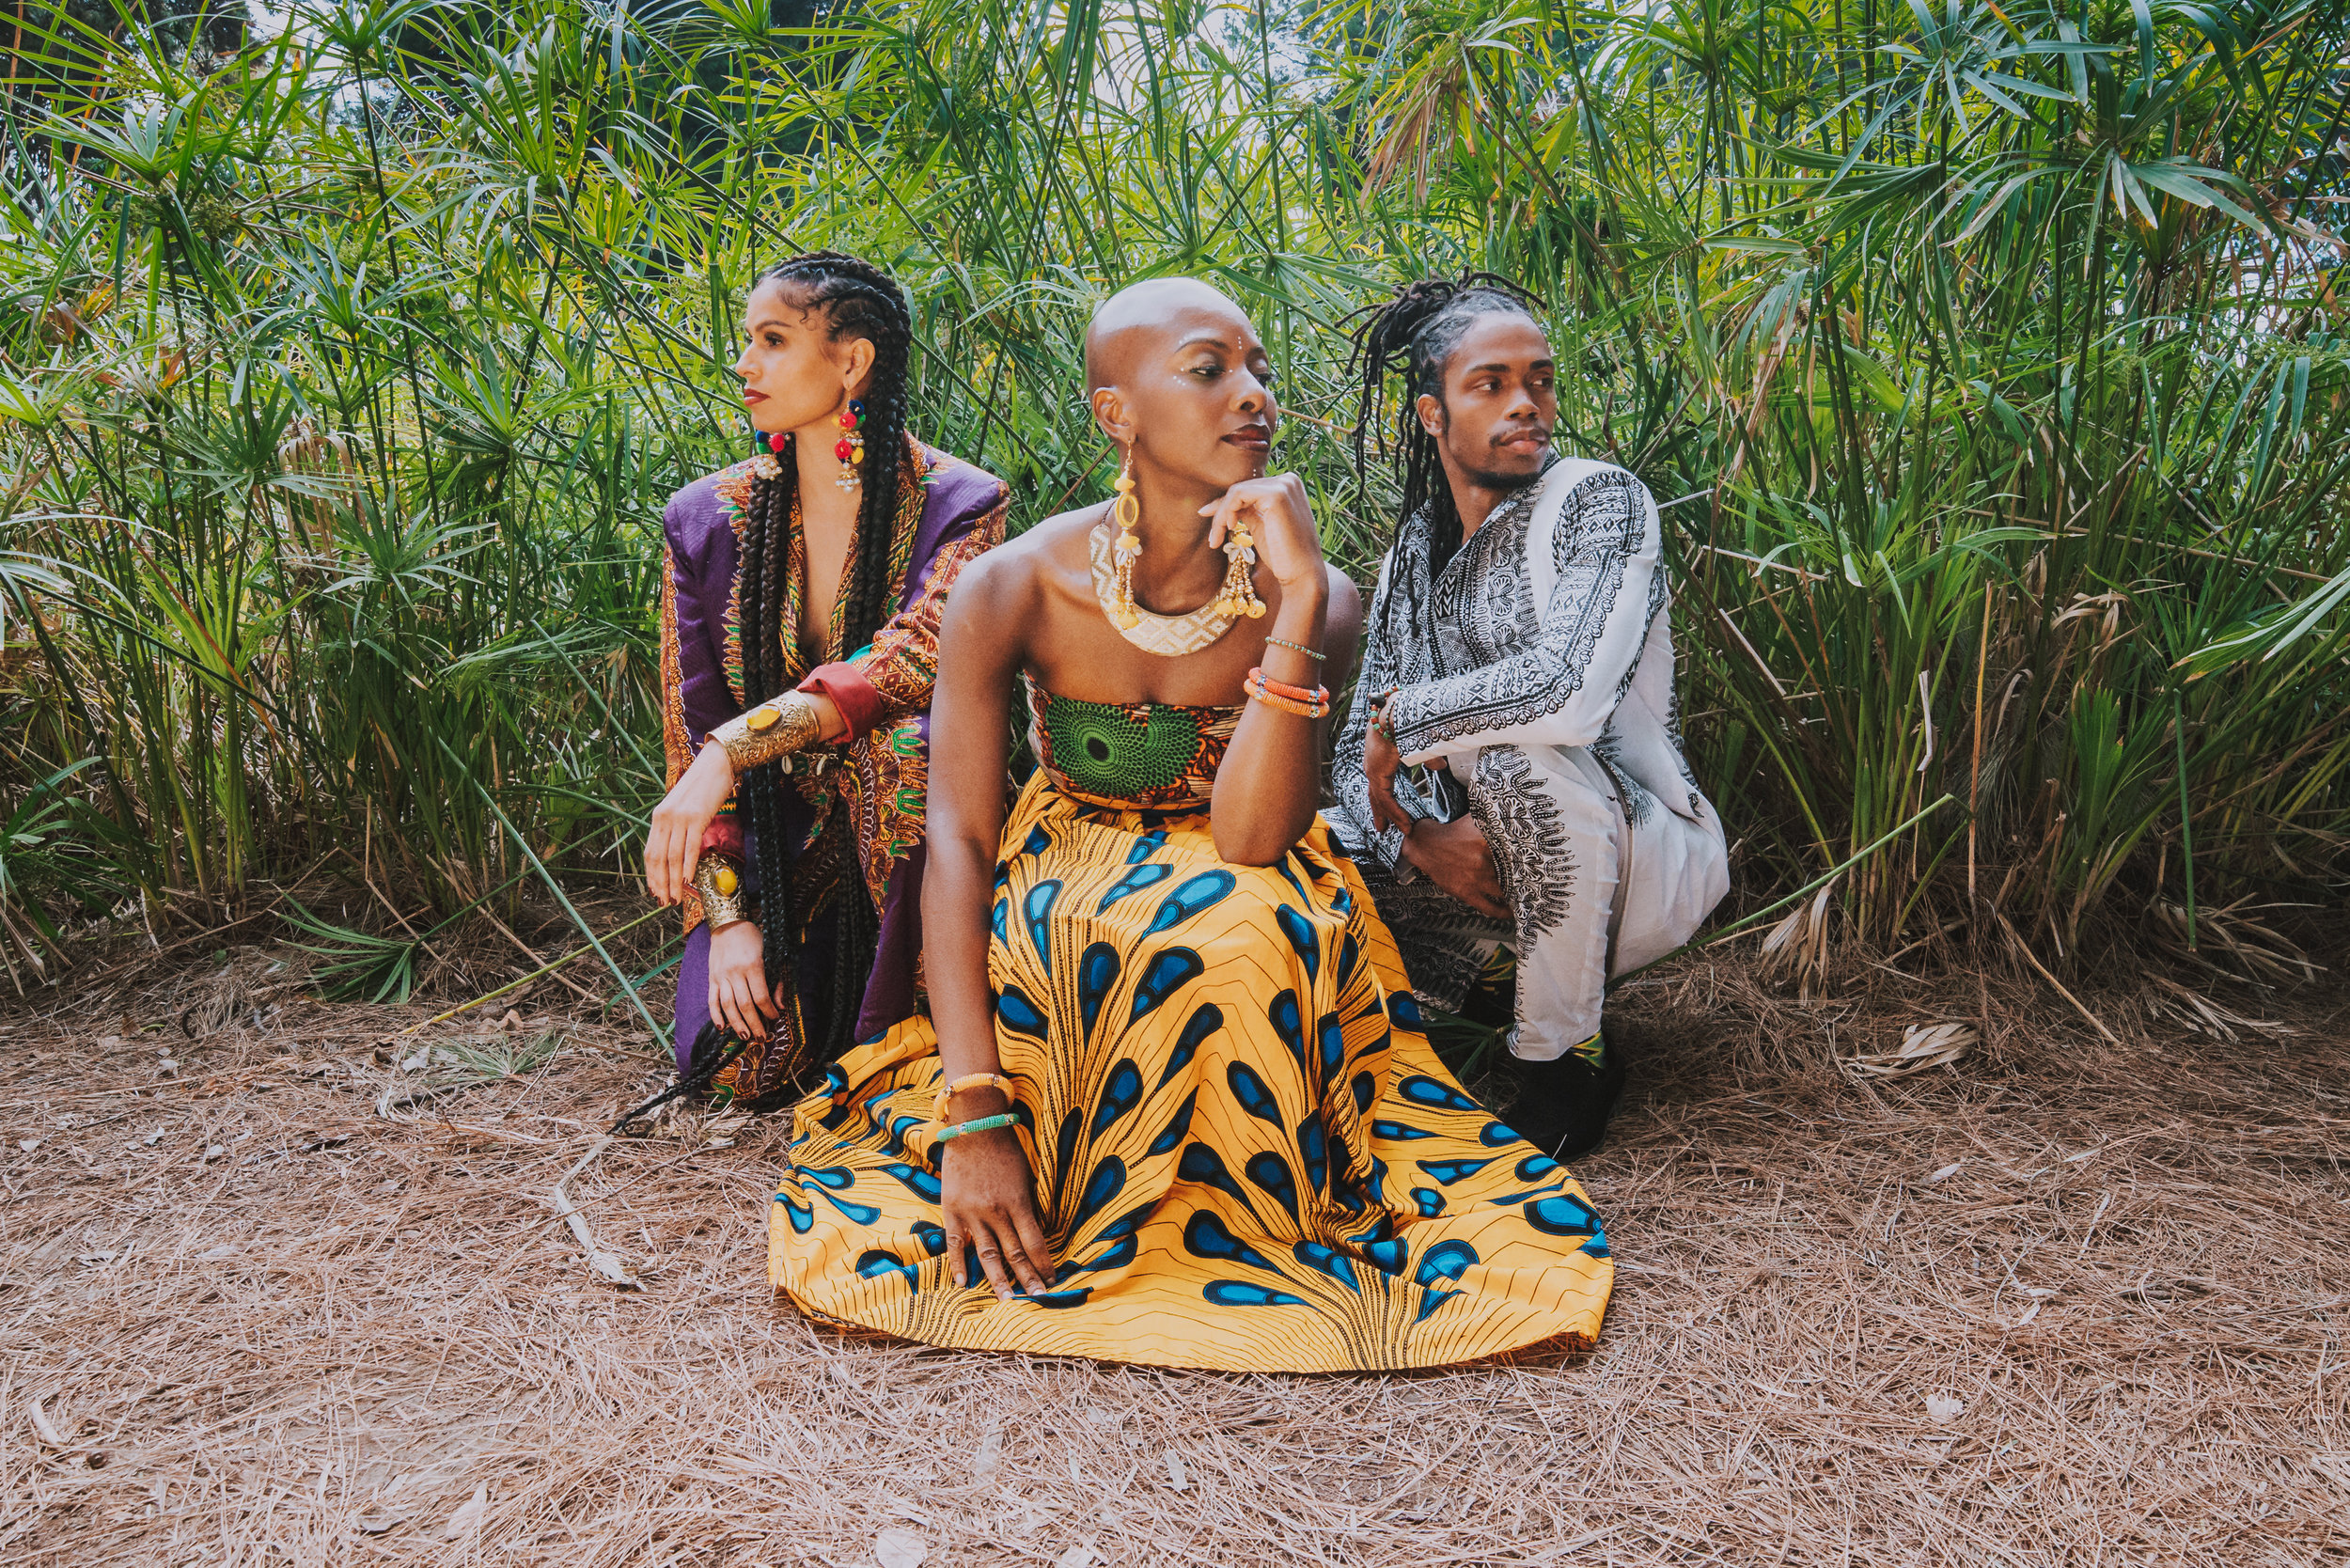 Models: Rachel Hernandez, Onyi, Kahlil Cummings,  Photographer: Farah Sosa  MUA: Nena Soulfly  Face Dot Adornment: Onyi  Location: Los Angeles, CA